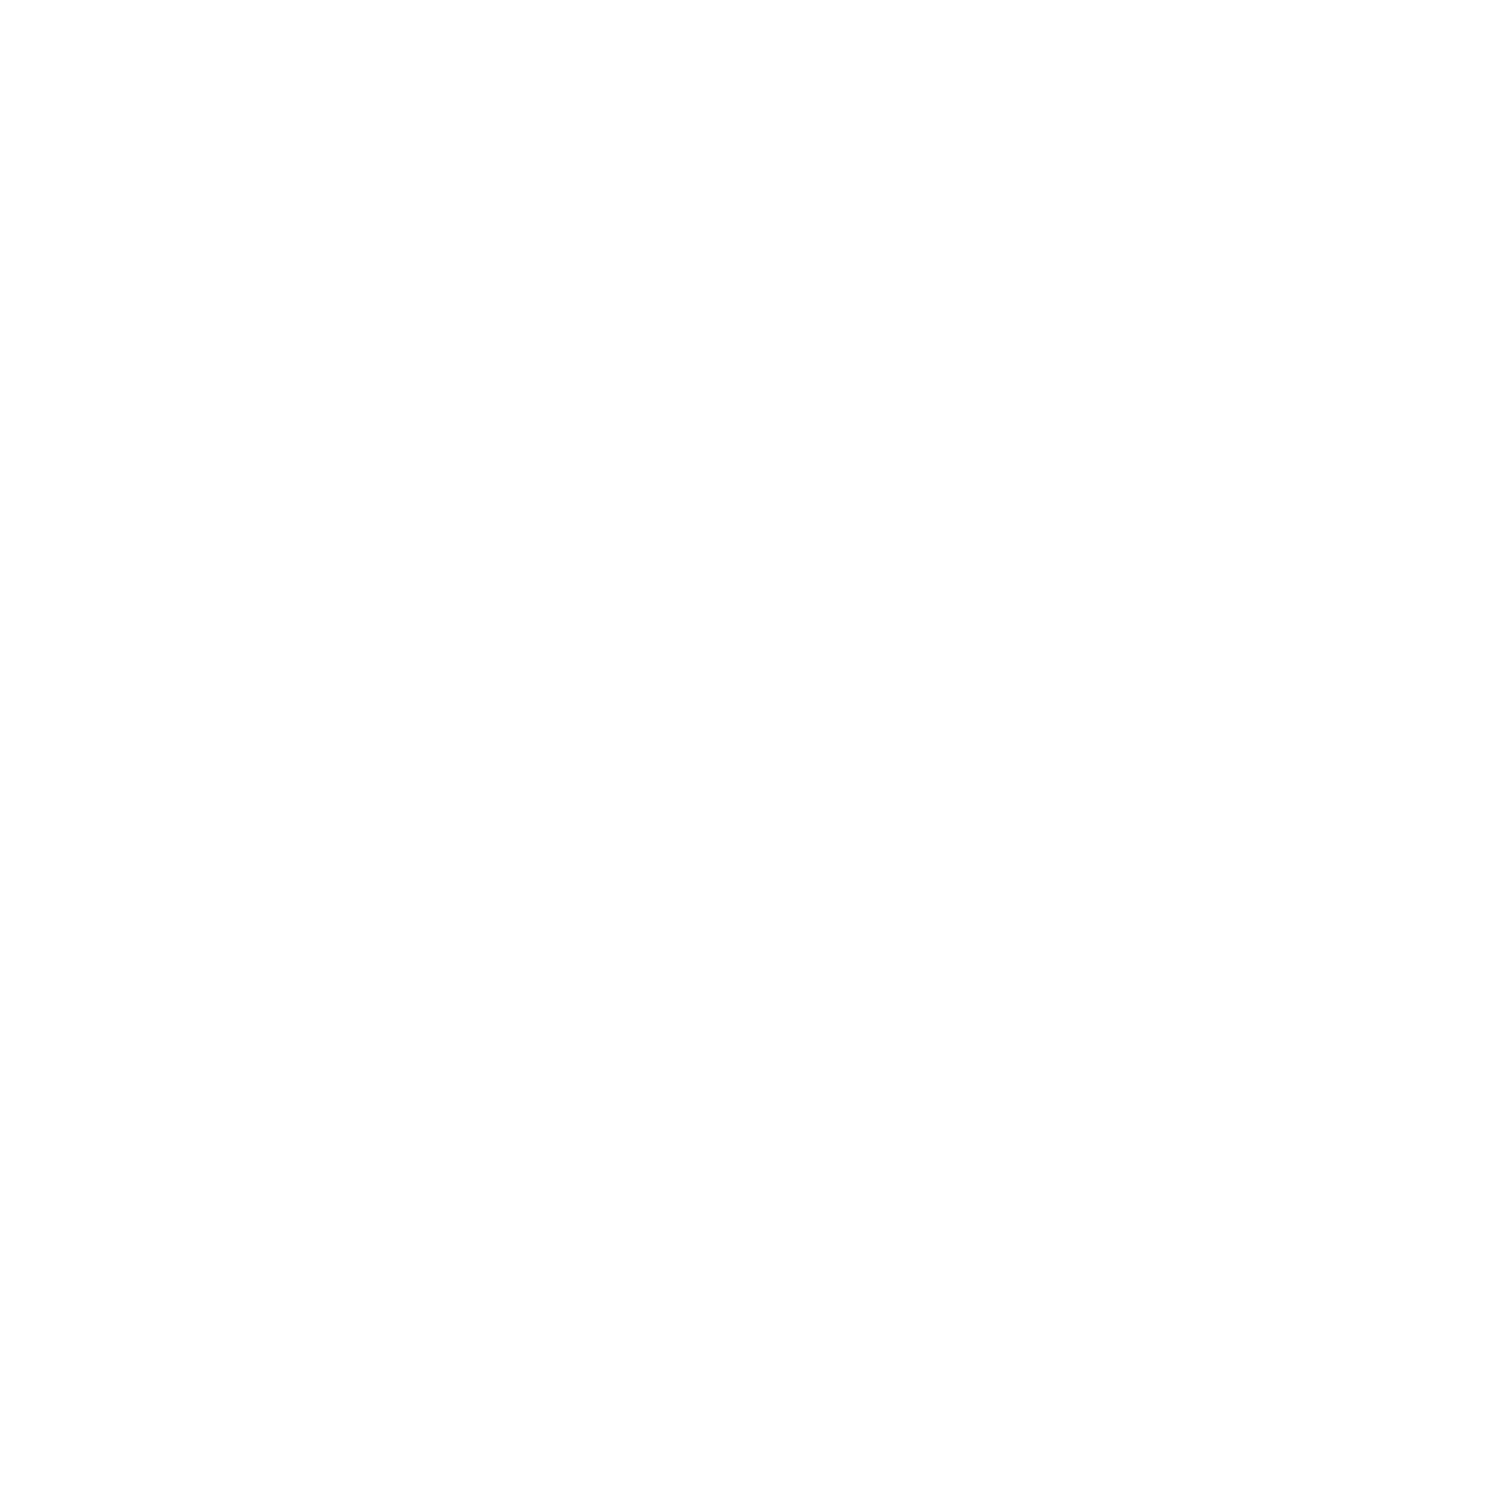 True View Ministries